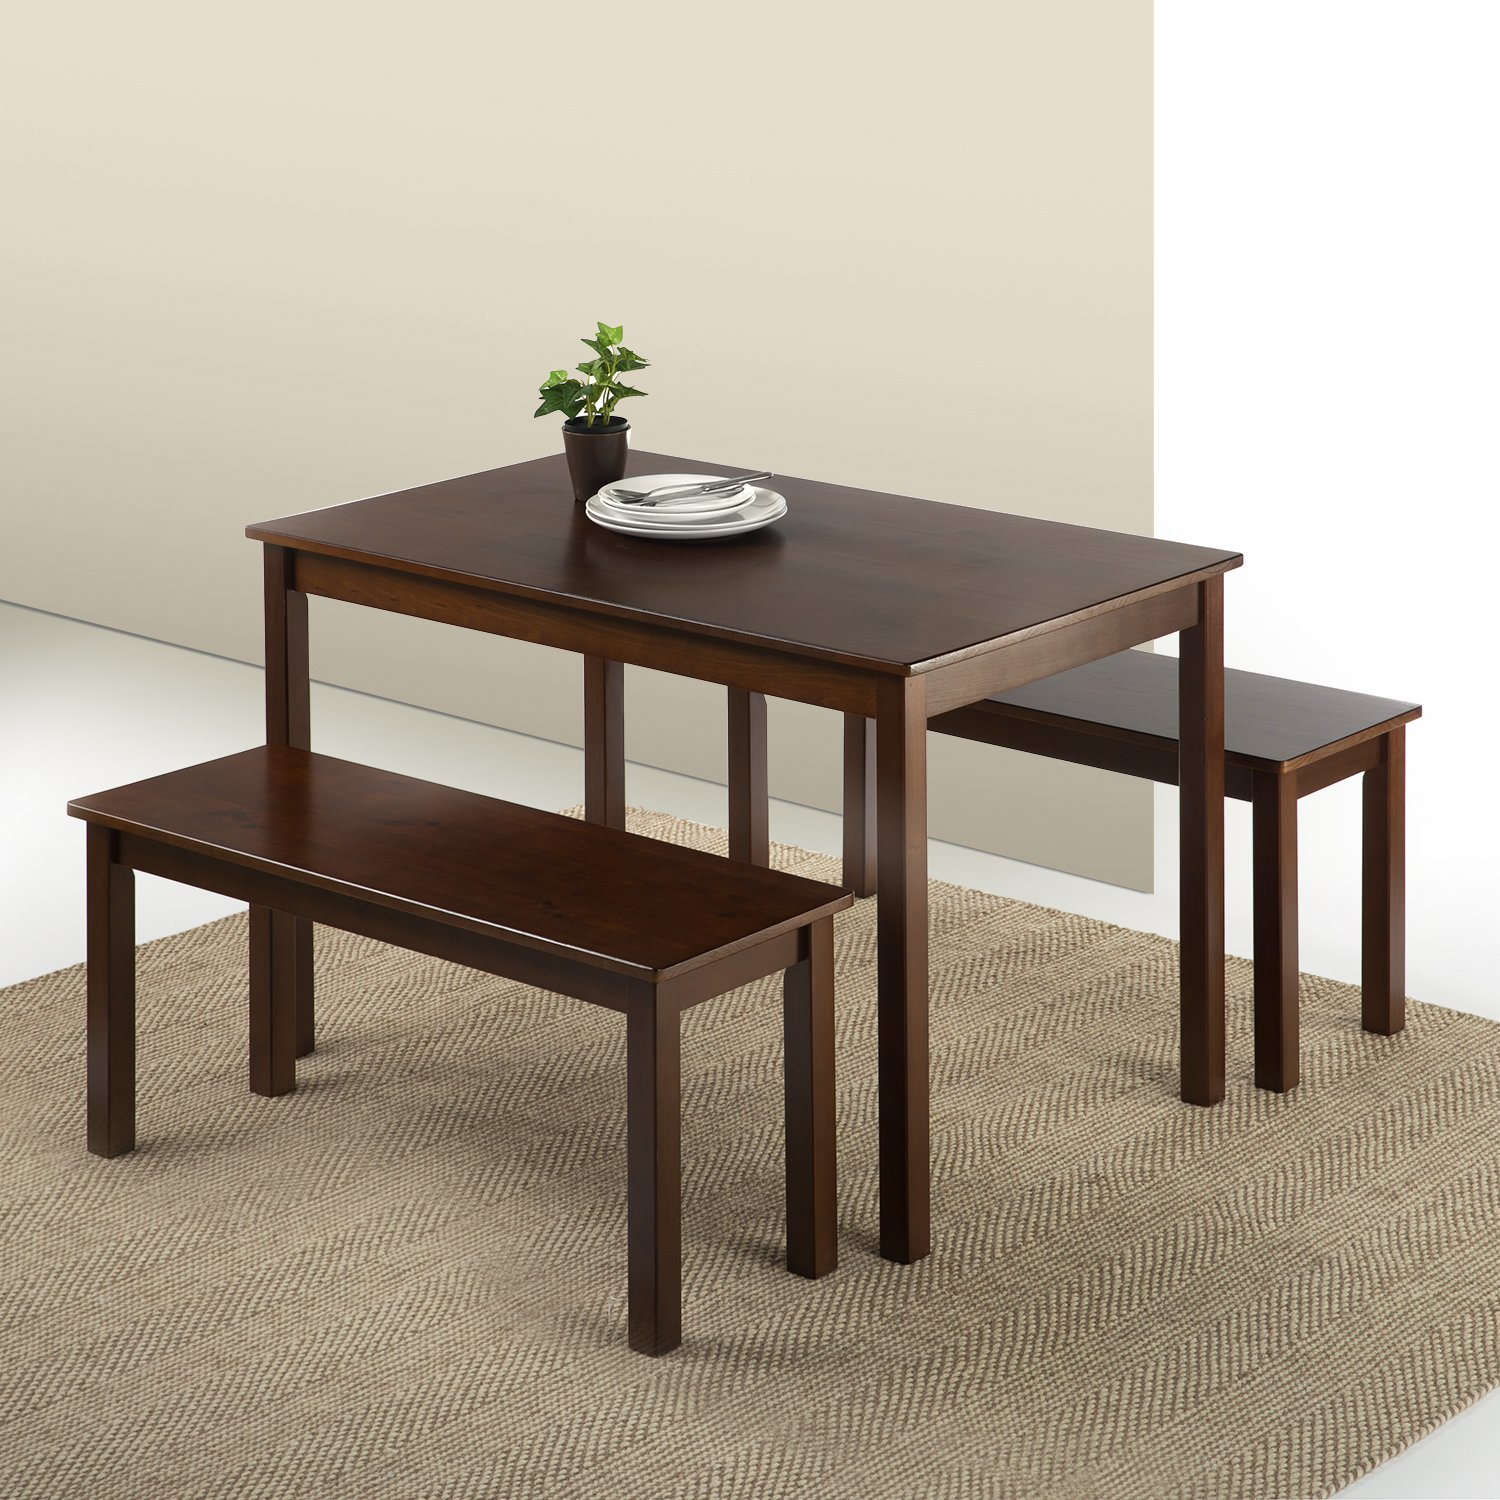 Zinus Juliet Espresso Wood Dining Table with Two Benches / 3 Piece Set